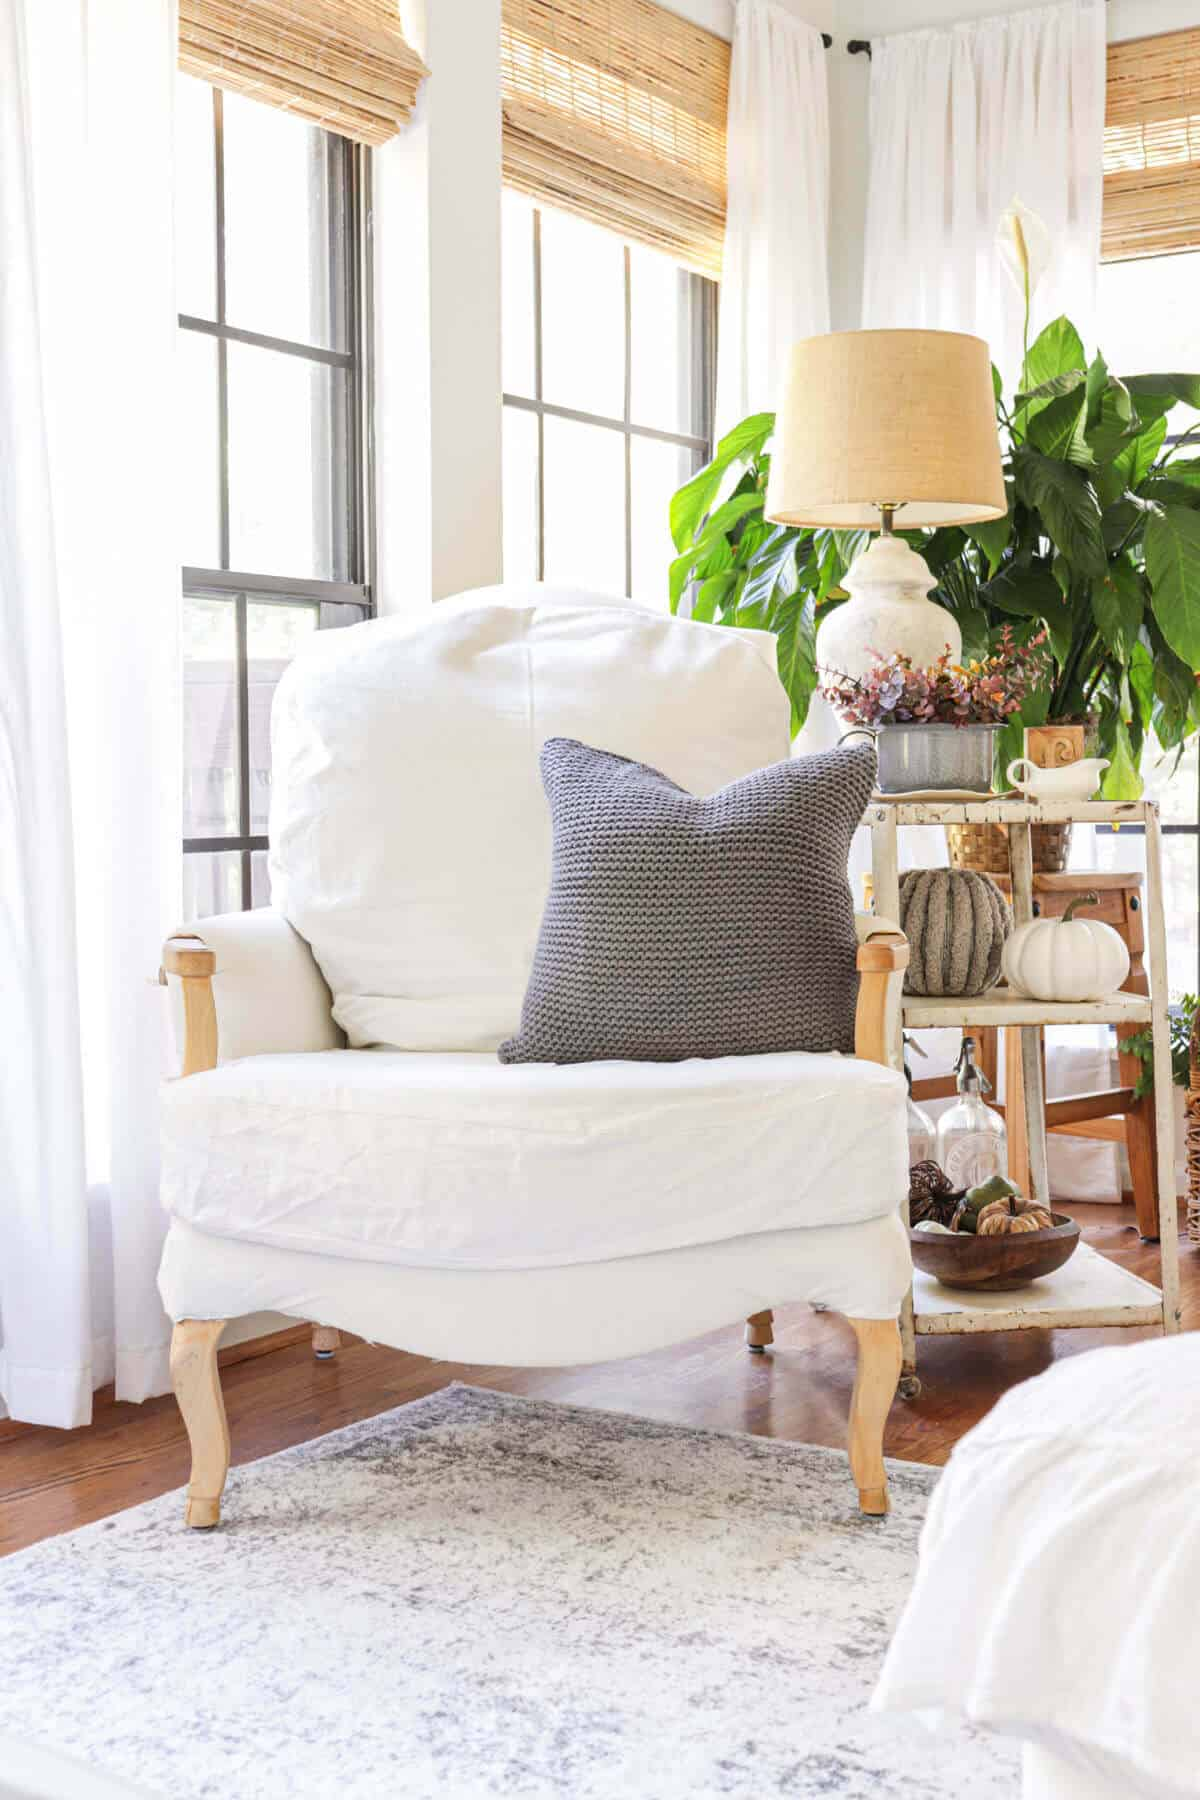 white armchair with a gray knit pillow,